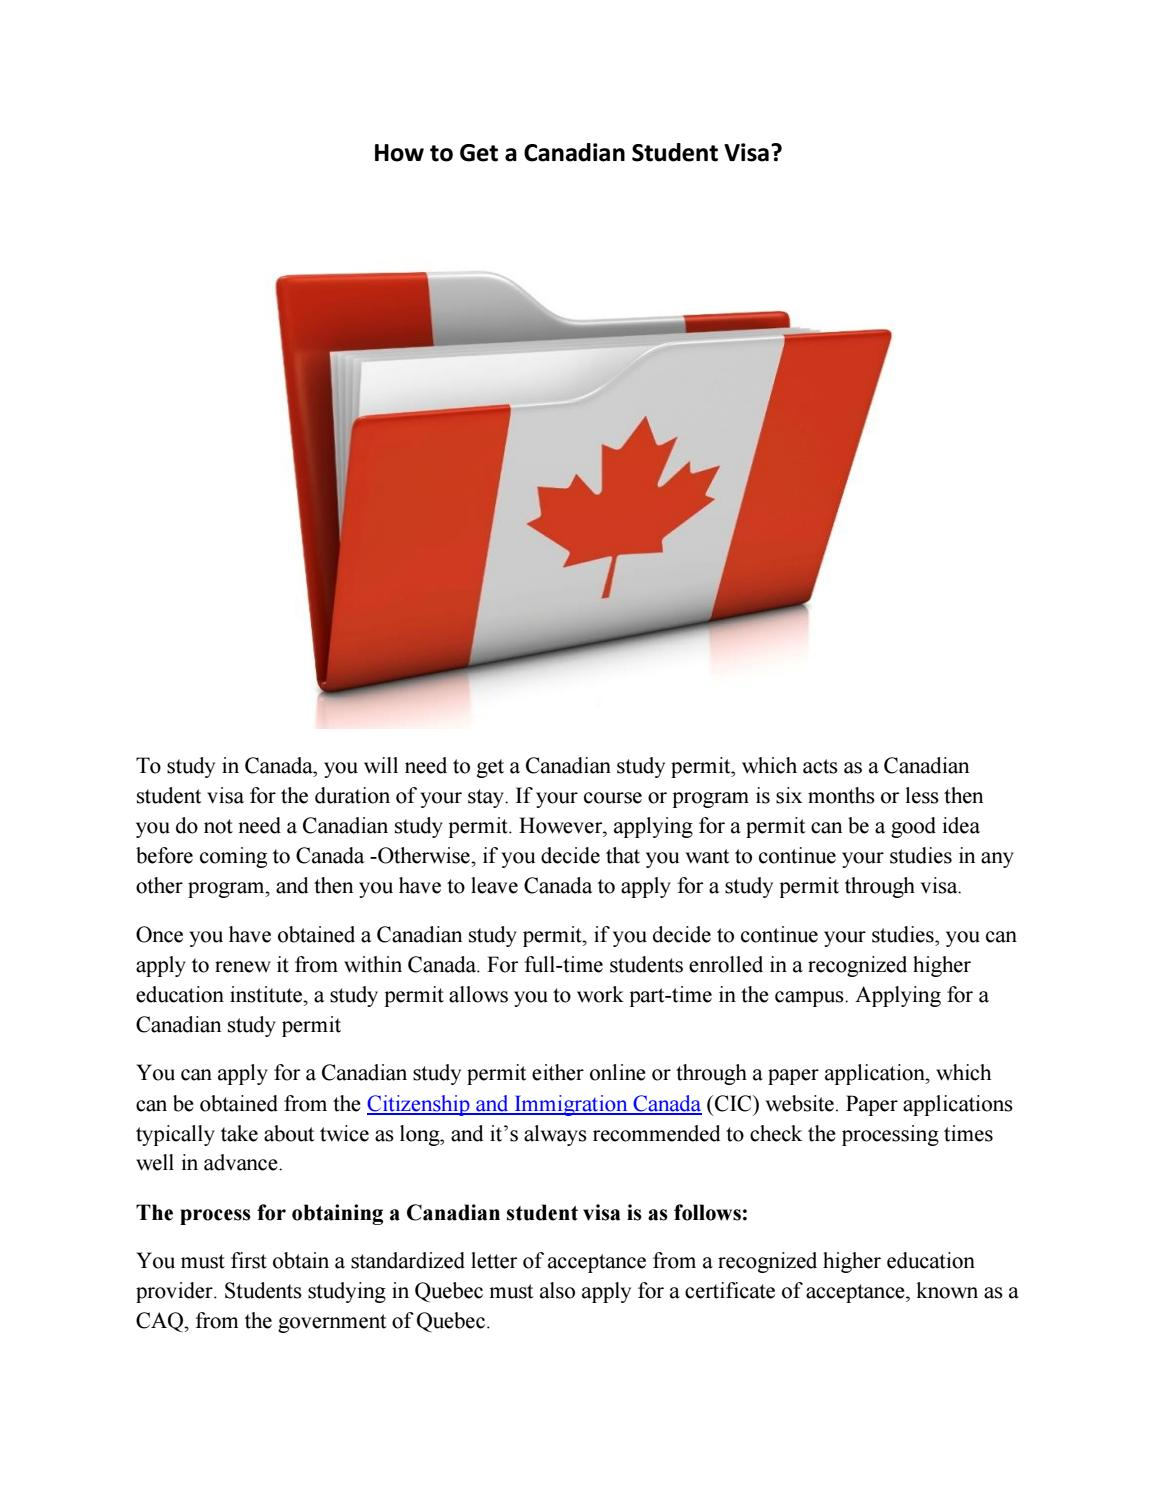 How to Get a Canadian Student Visa? by KP Immigration - issuu